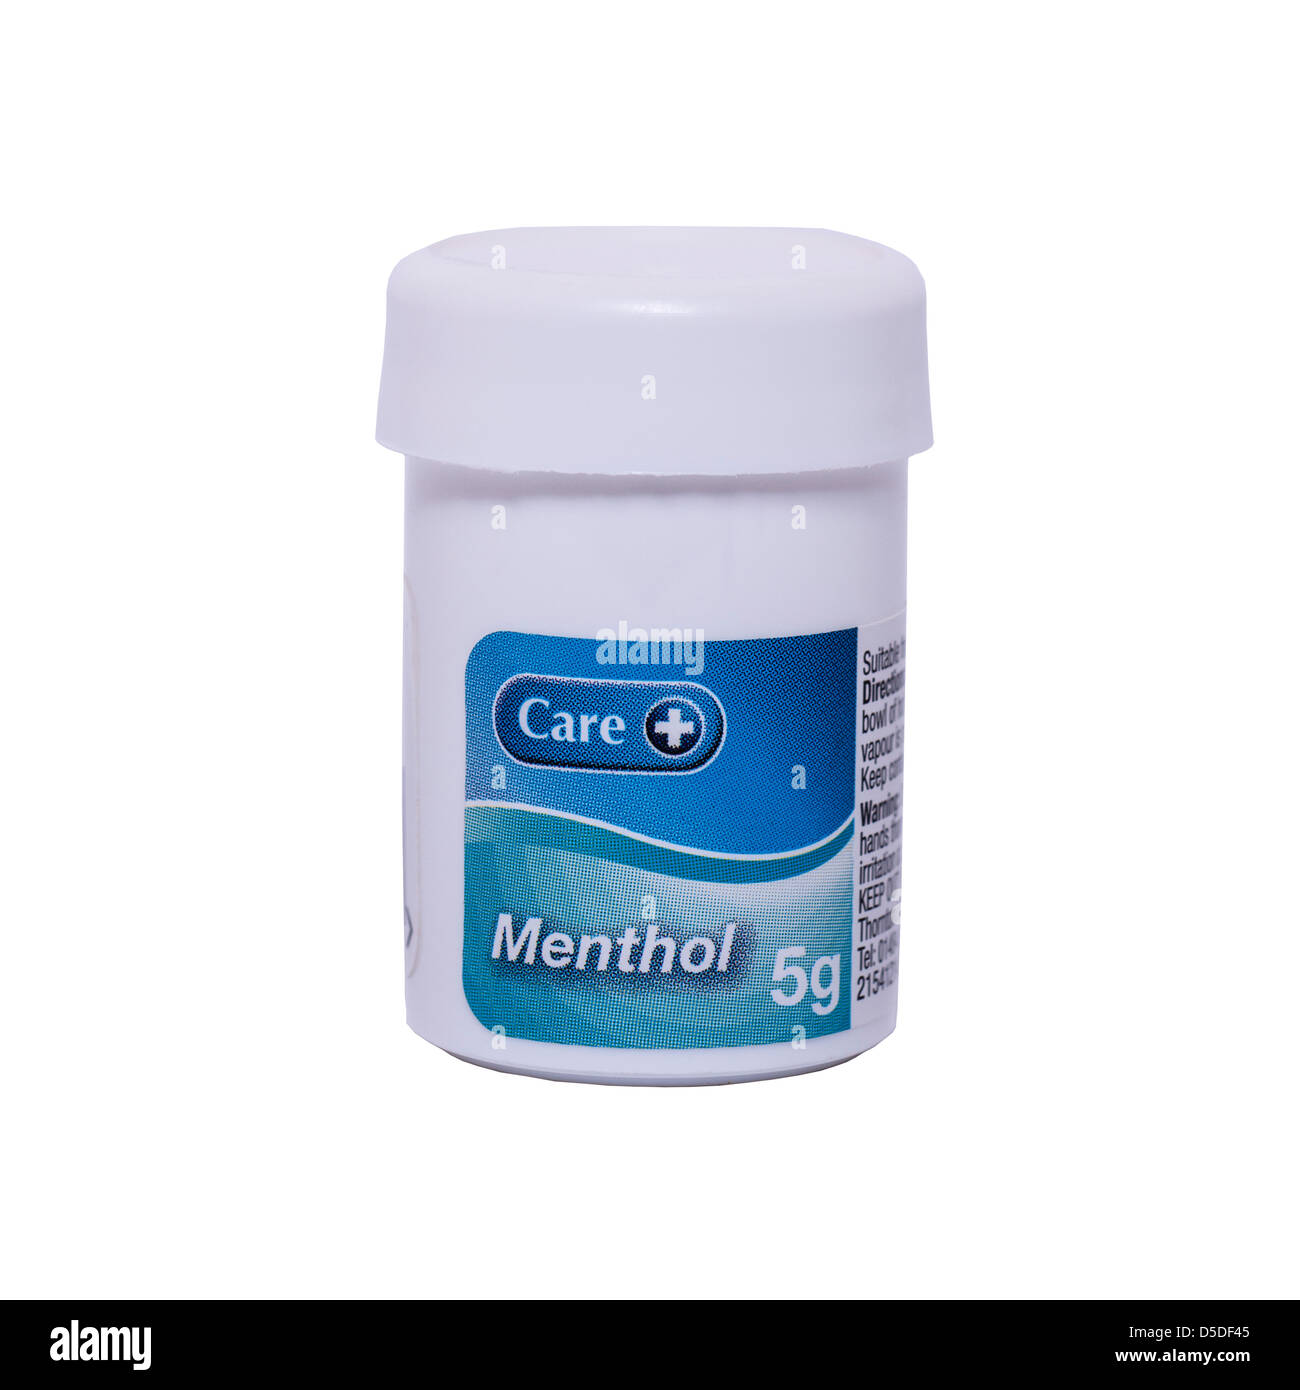 A tub of Menthol crystals for clearing congestion on a white background - Stock Image